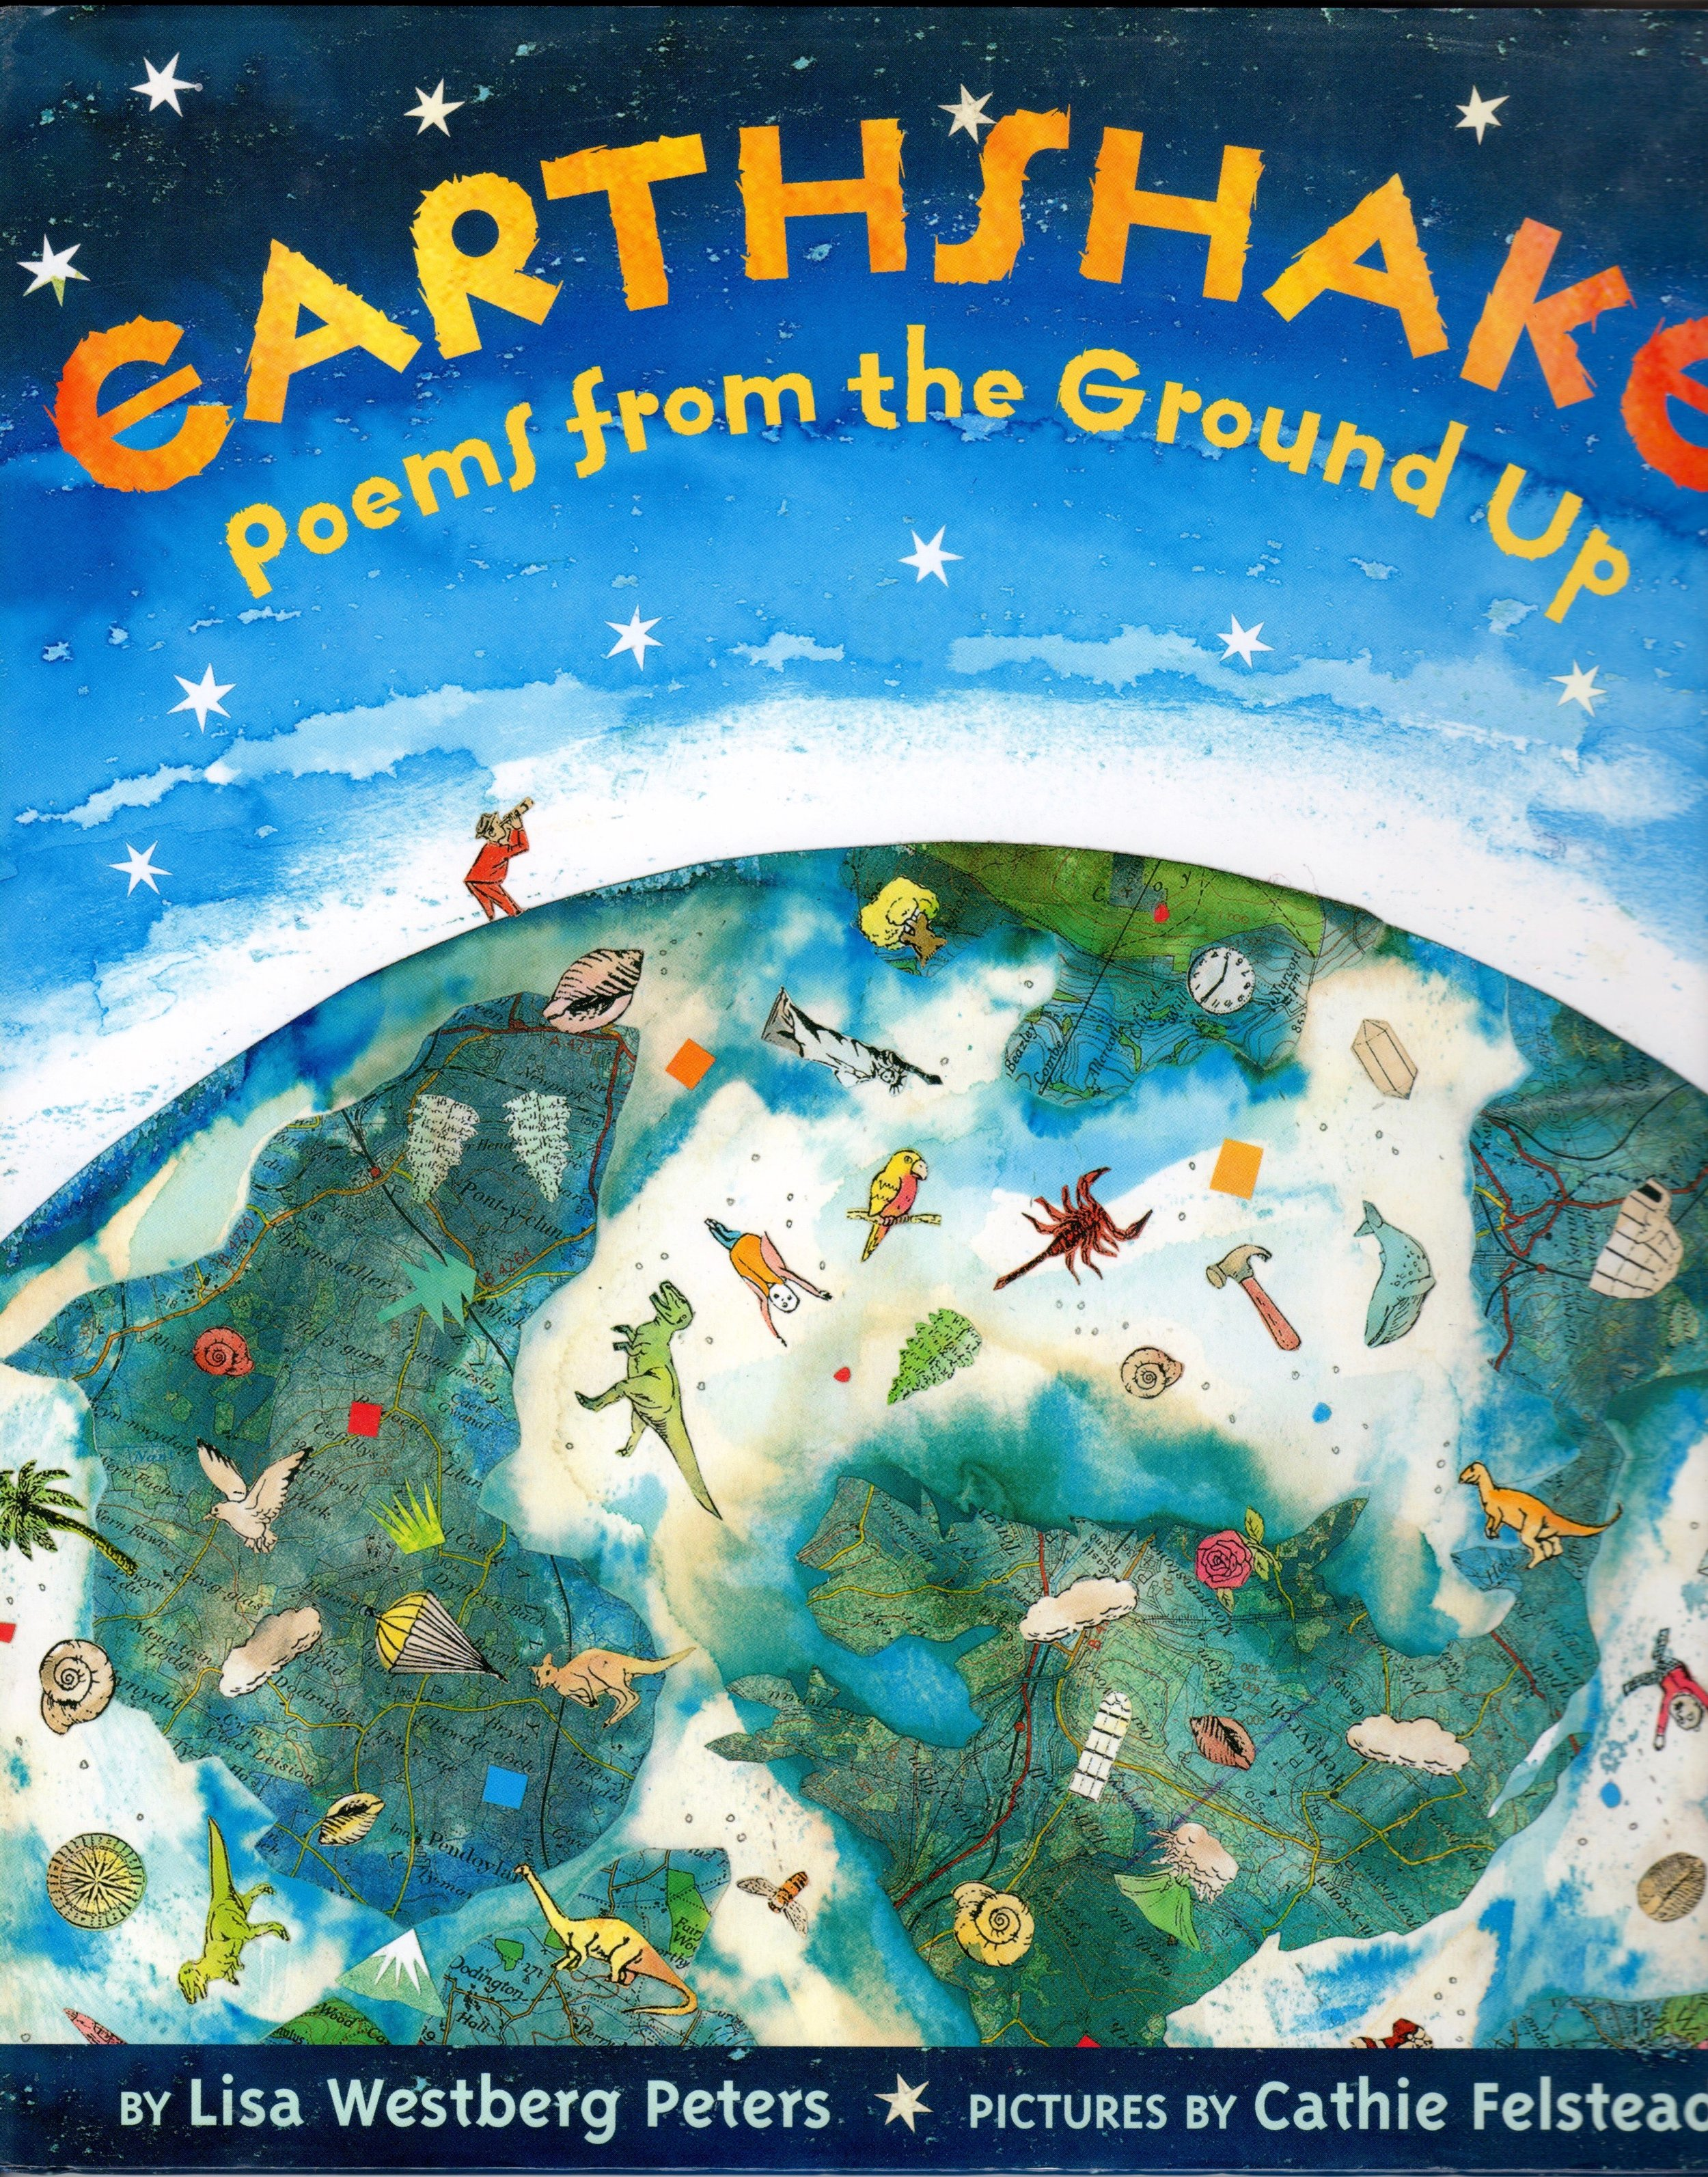 Earthshake: Poems from the Ground Up - Level: Third grade and upNorth Carolina Junior Books Award Activities, plus Writing, Science and Art Class Activities